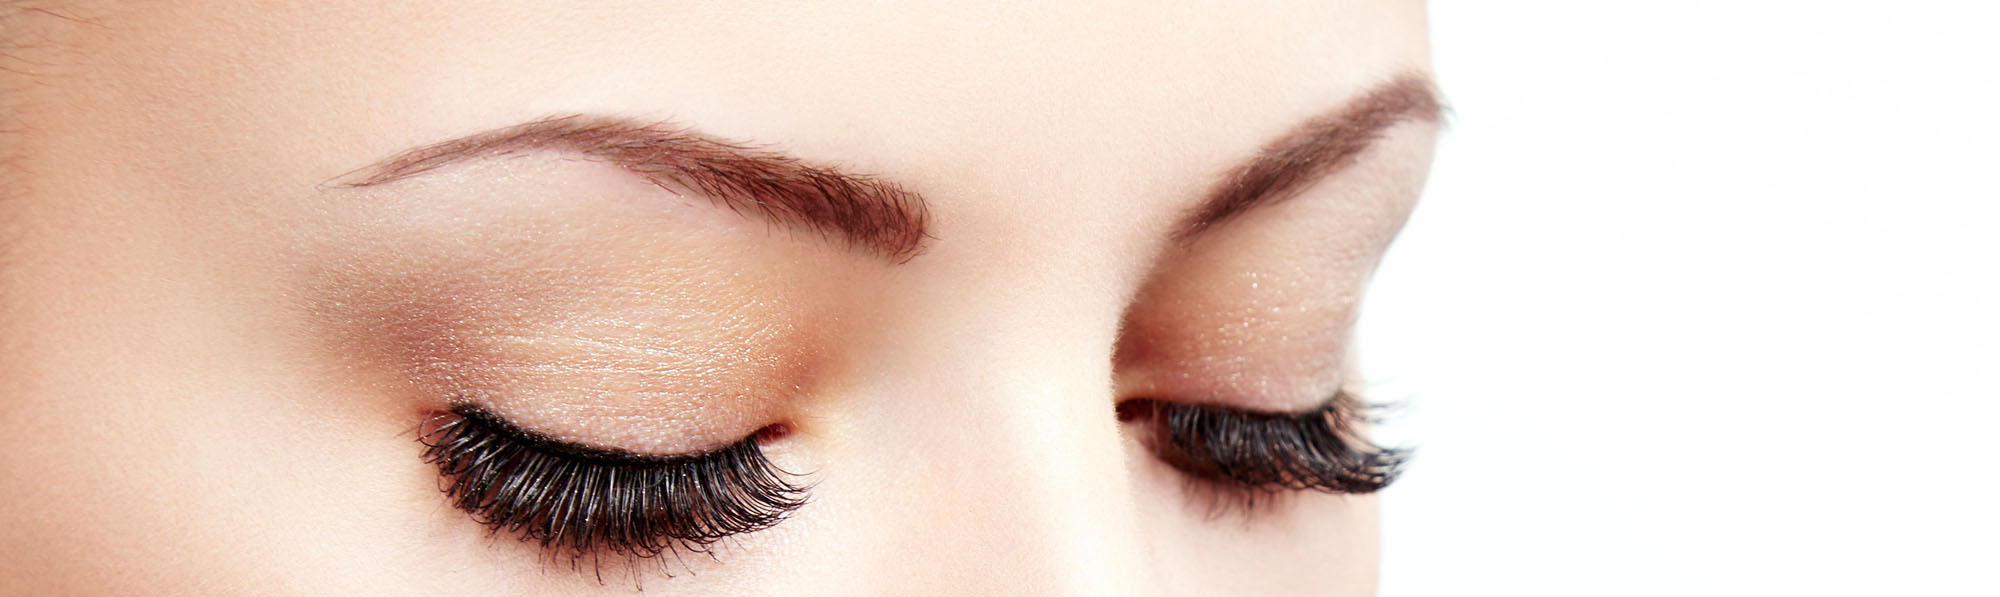 Eyelash Extension Florida Santa Barbara Eyelash Extension Training